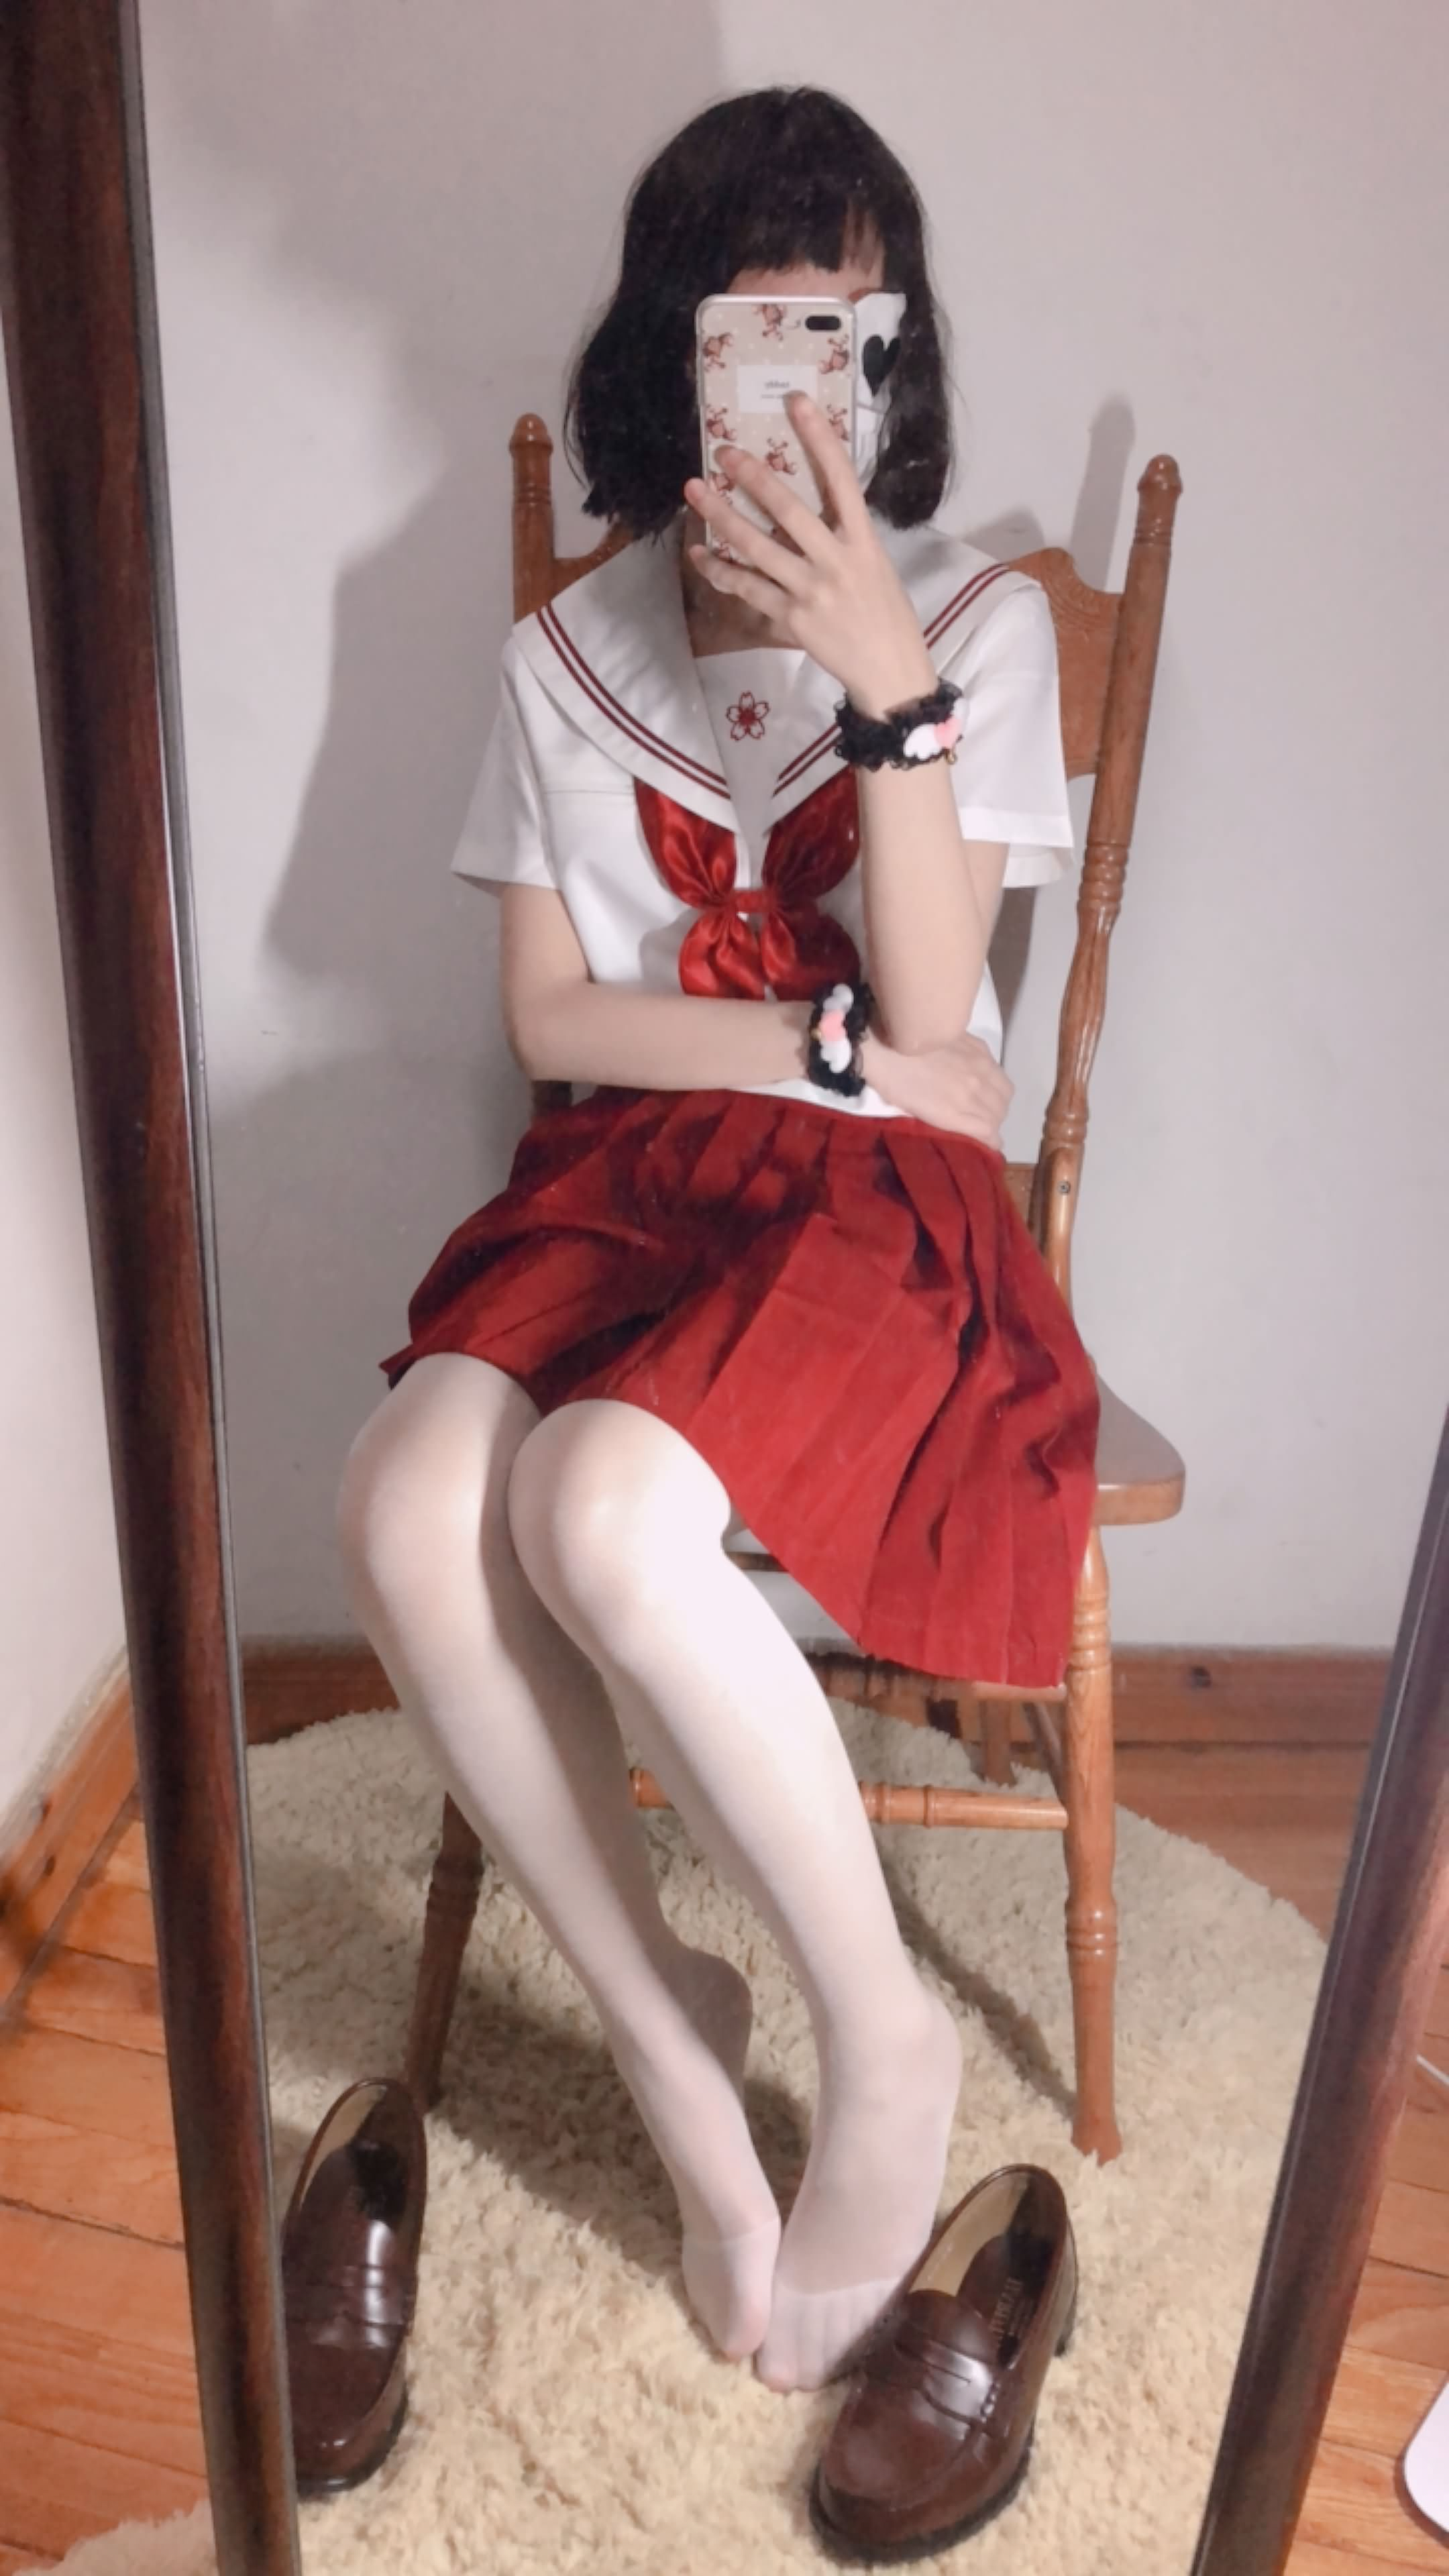 25 - Cosplay red JK uniform white stockings sweet pussy butt 小结巴-红色jk制服白丝 95P